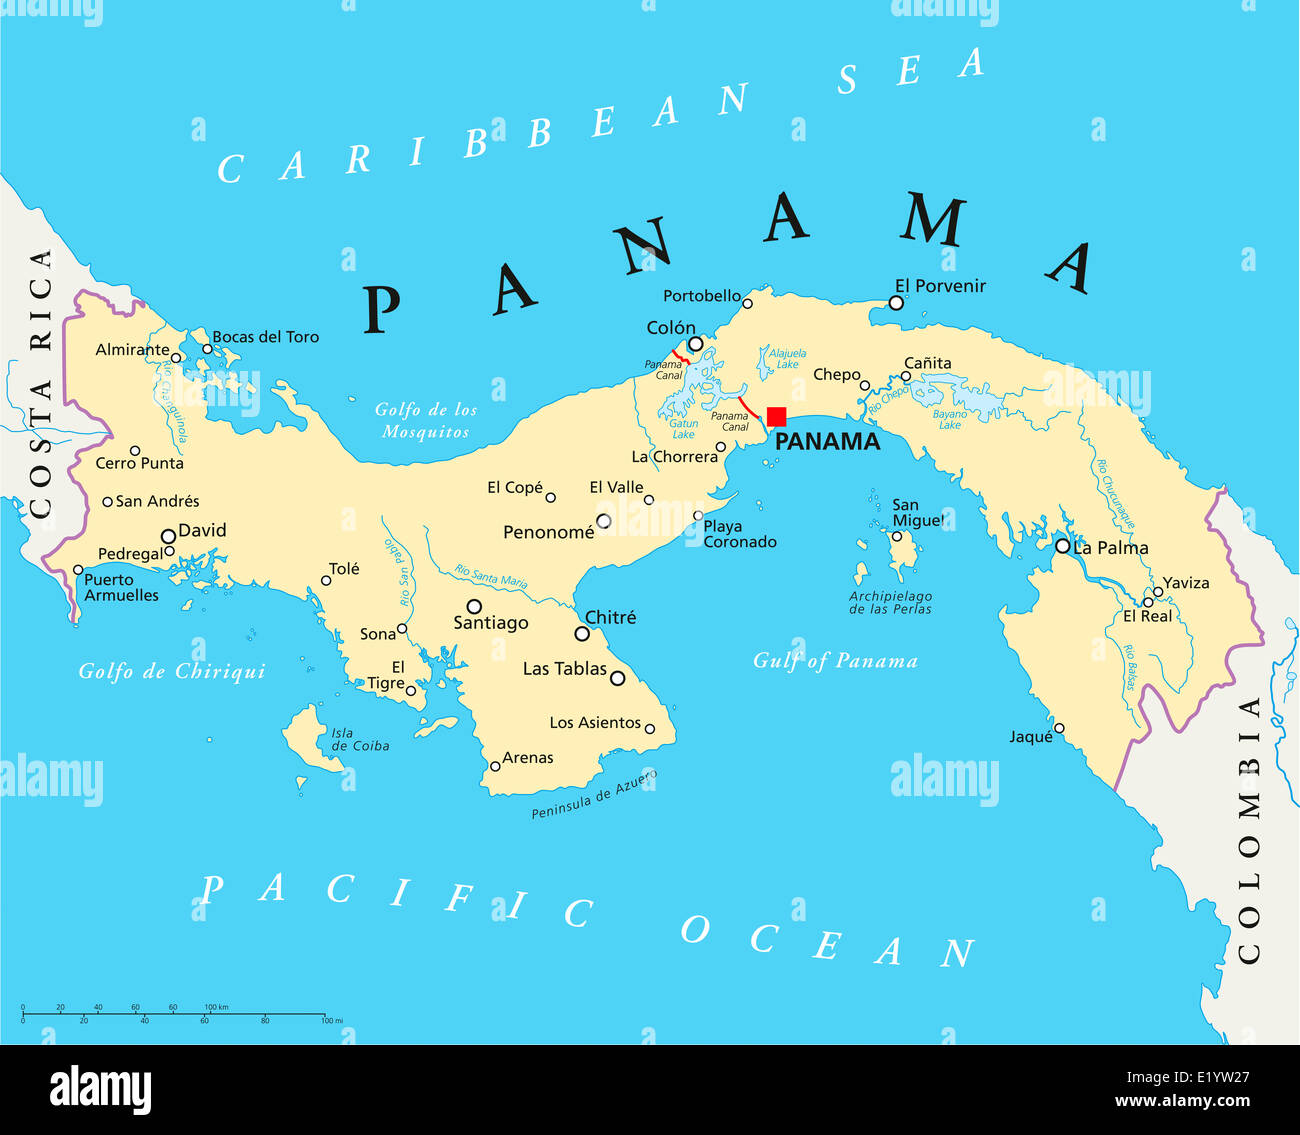 Panama Political Map With Capital National Borders Most - Picture of map of united states with rivers and lakes labeled